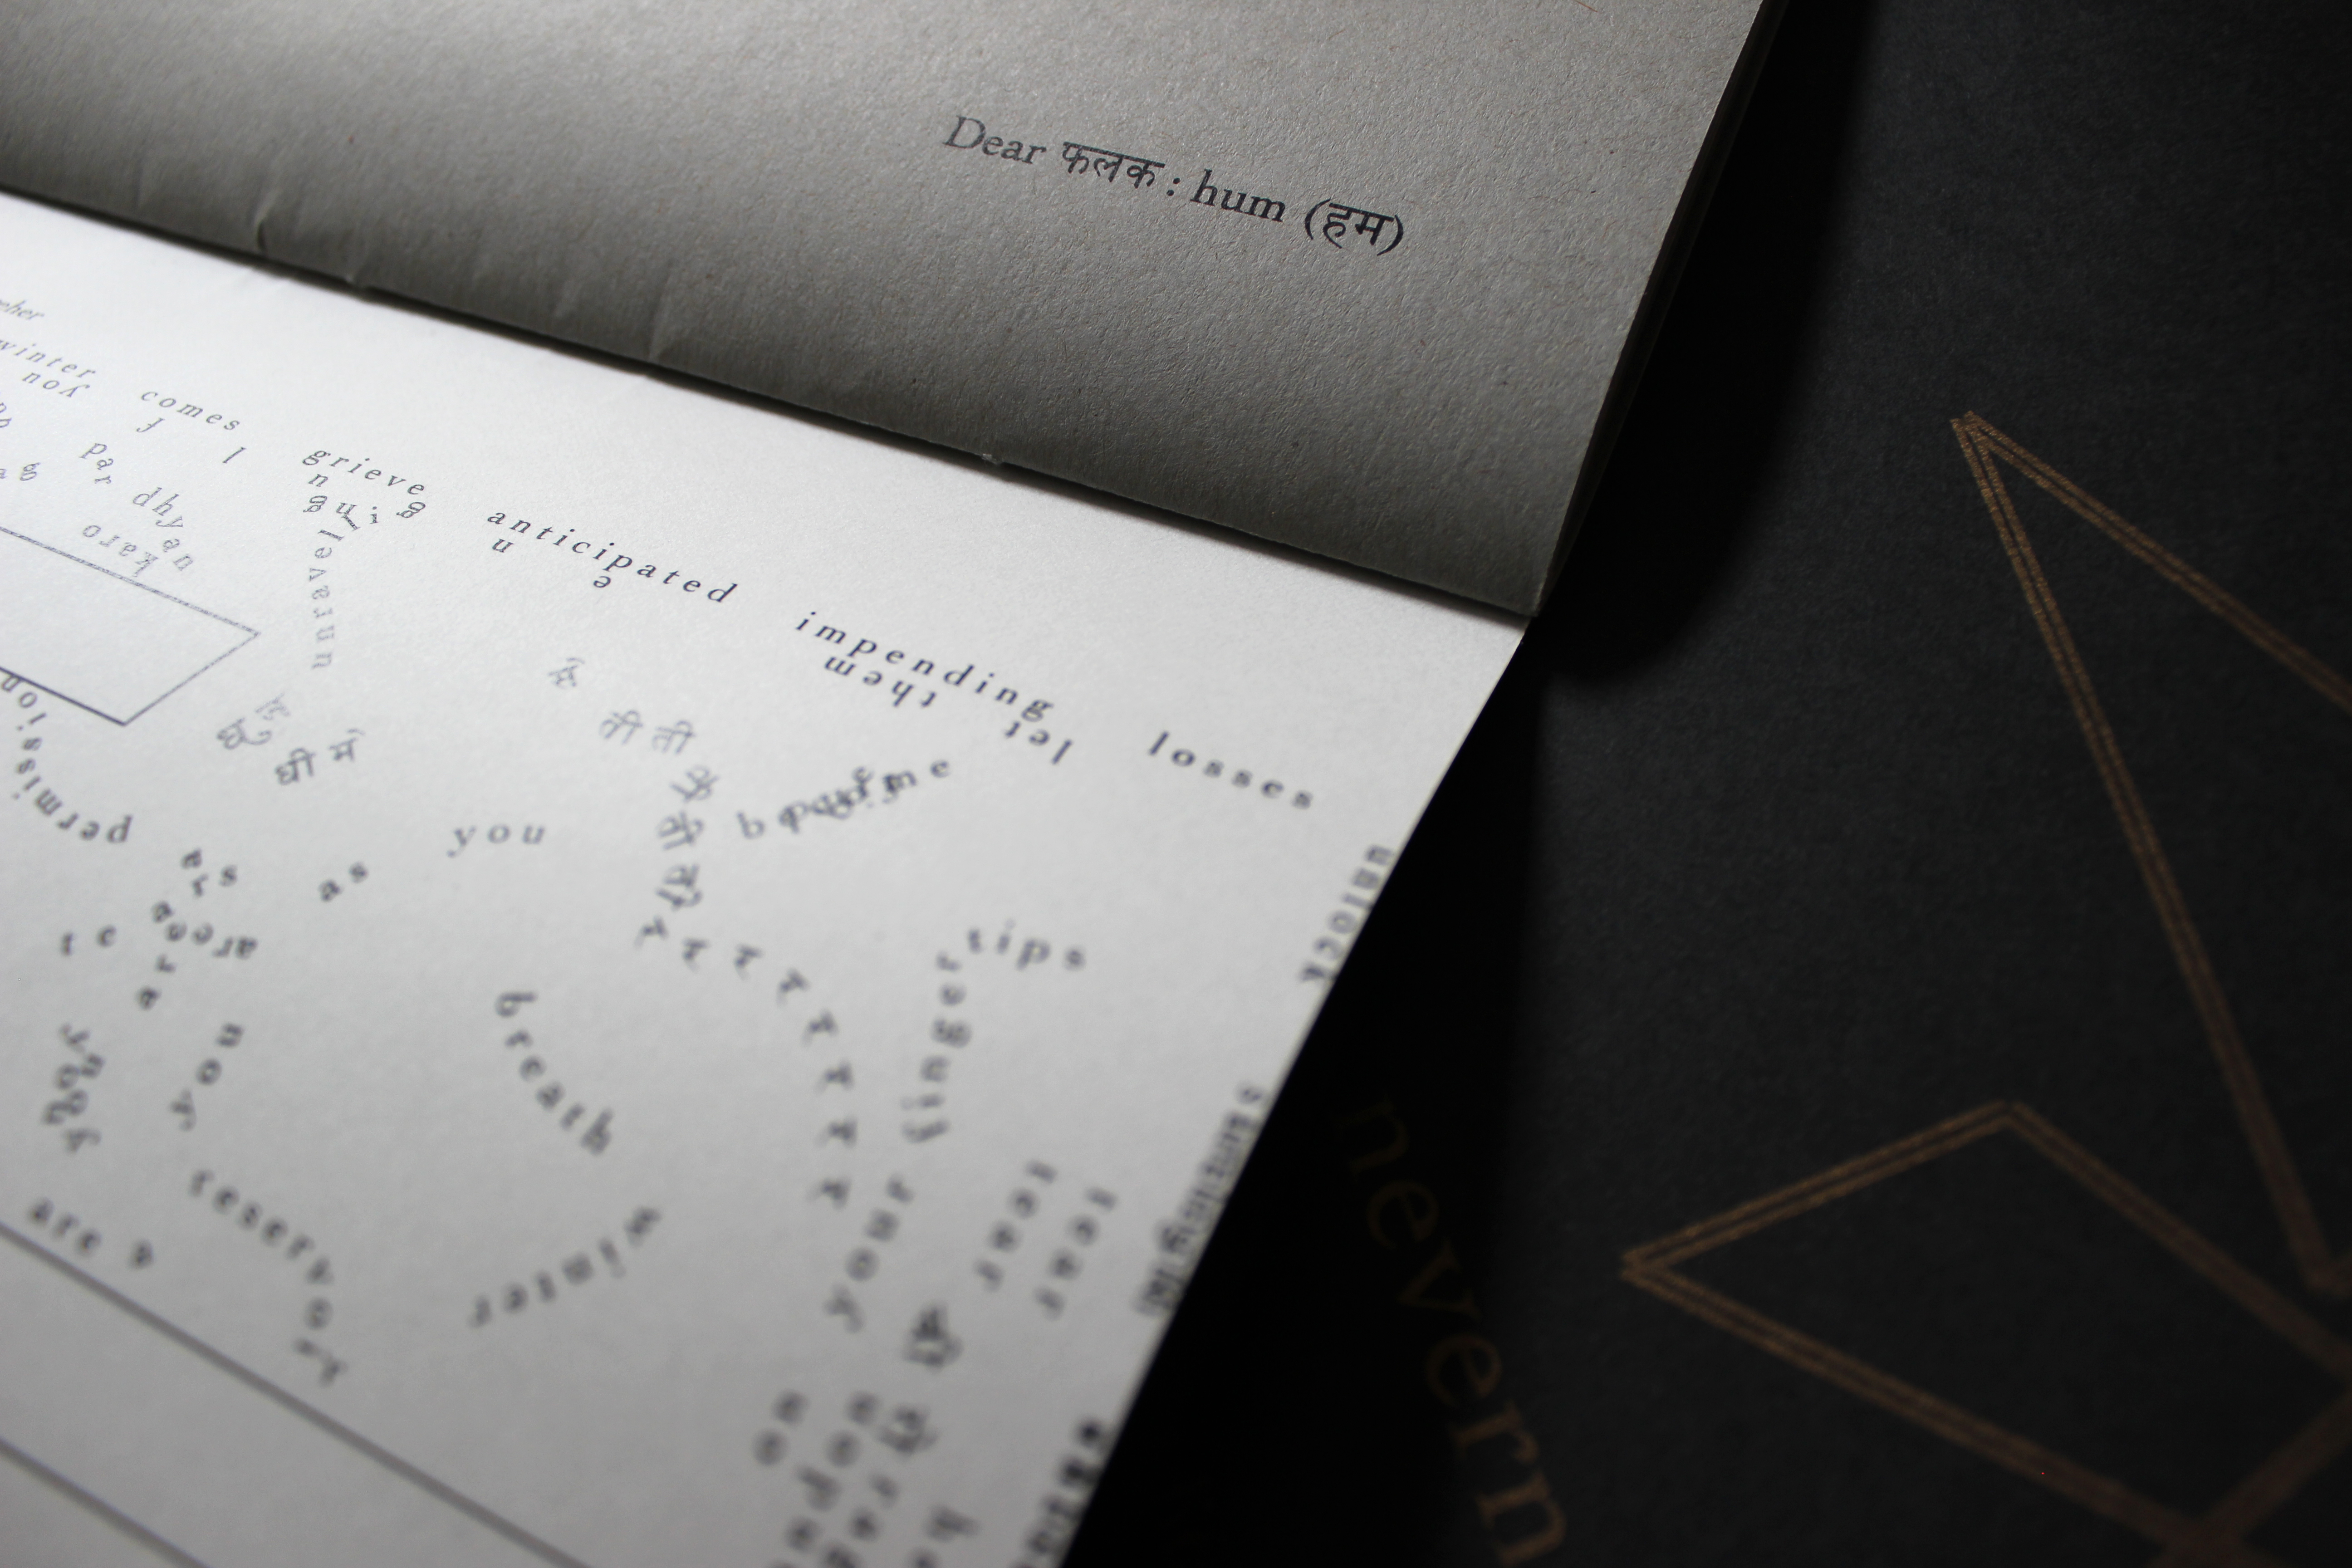 """This image depicts parts of a performance score (bound into a thin book) and of a cover (with the beginning of the title in gold and thin parallel gold lines forming triangles or rectangles, on black paper). On the top page (toward its bottom-right corner), it reads """"Dear फलक : hum (हम)"""" in black ink on grey paper. Across the binding, on the bottom page, are text in English and Hindi and hollow shapes (partially visible; possibly rhombuses), both in black ink against a whitish vellum background. Text appears in different sizes and spatial orientations (e.g., right-side up, upside-down, diagonal, vertical, and organic shapes), with some words/phrases expanded in space, condensed, or intersecting with other text. Along one side of the vellum page, text is flush with the edge; along the binding side, there is a white margin between the line of text and the binding."""